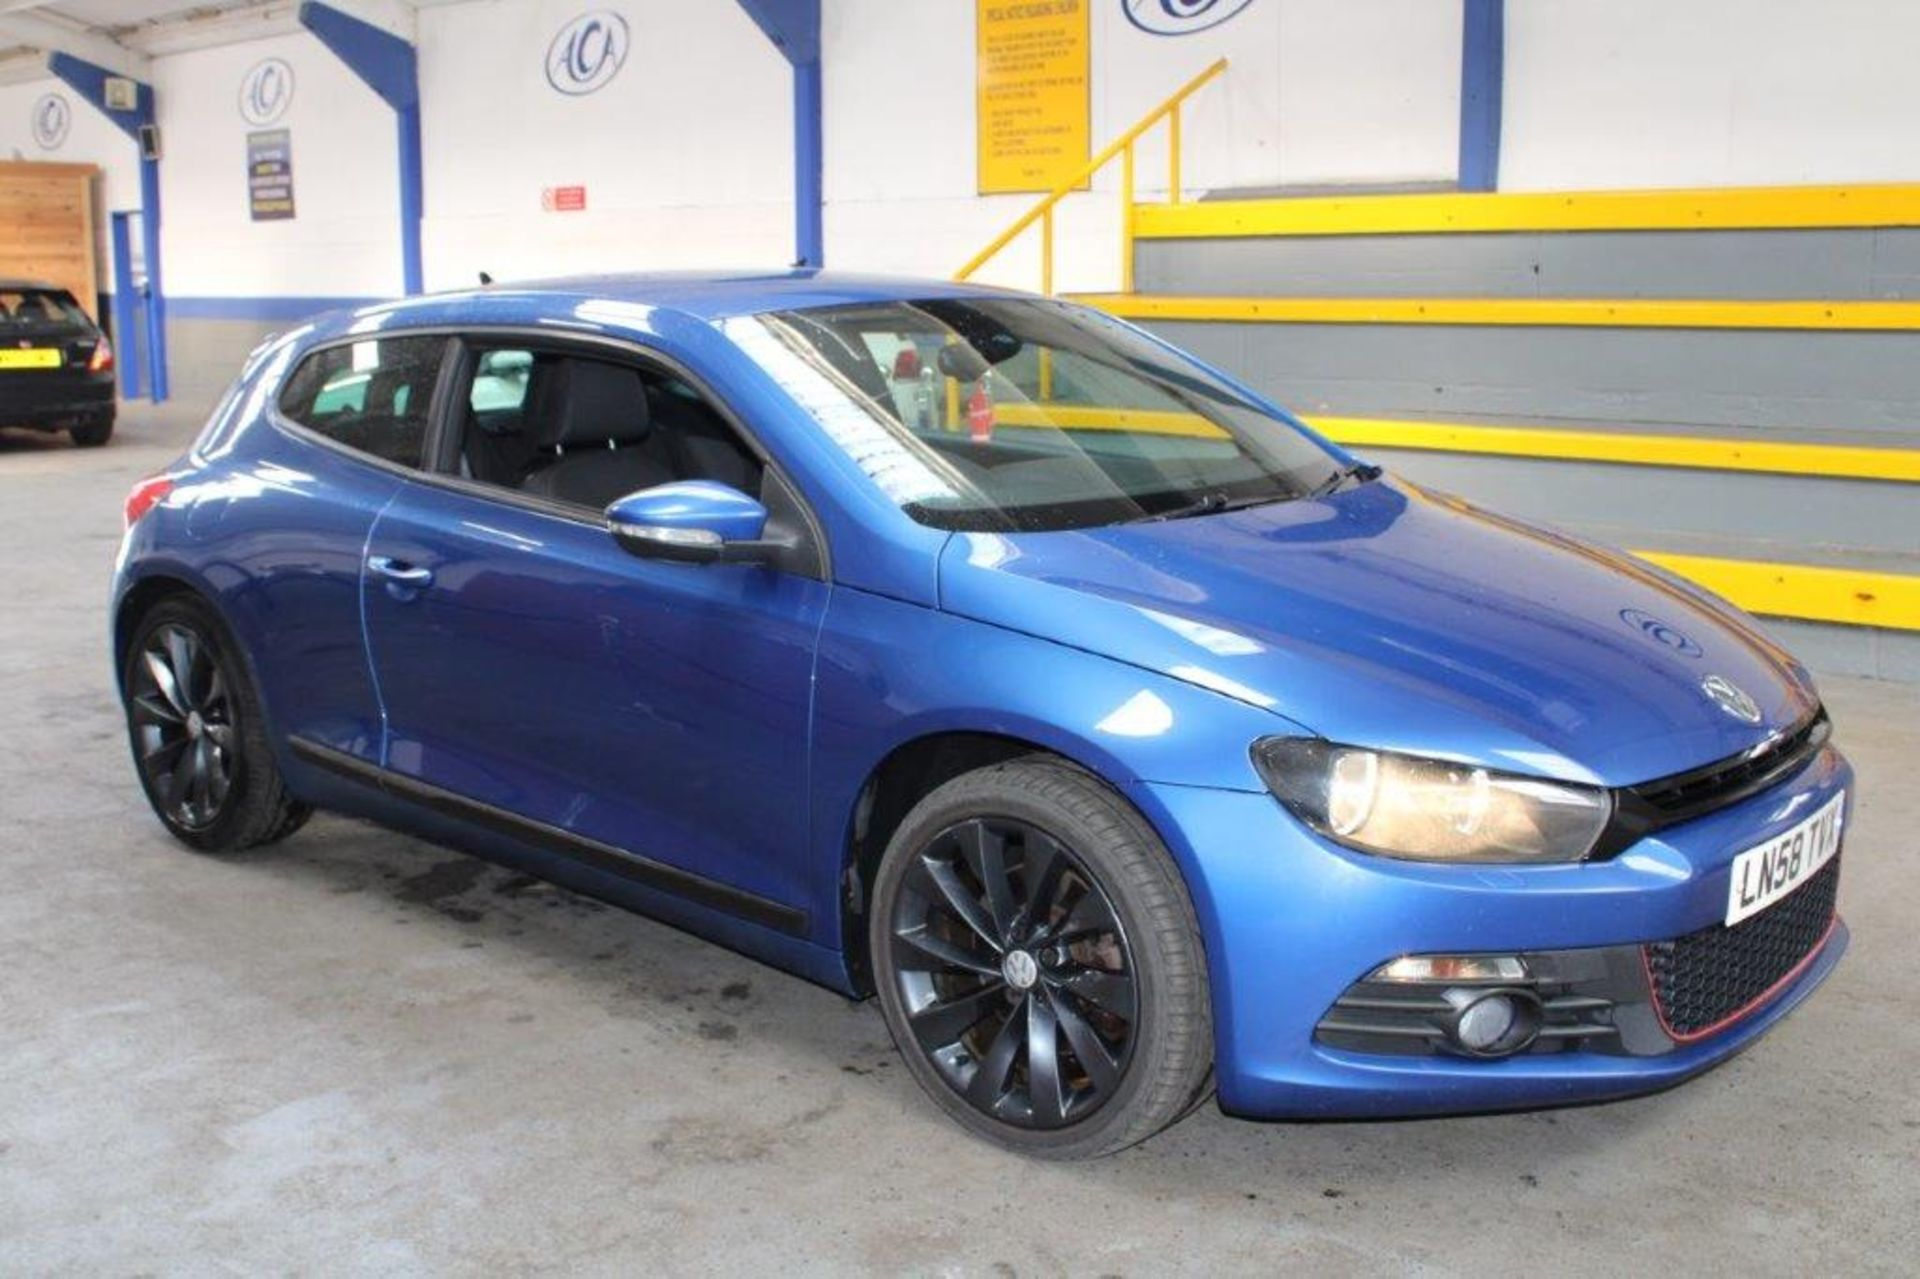 58 08 VW Scirocco GT - Image 9 of 29